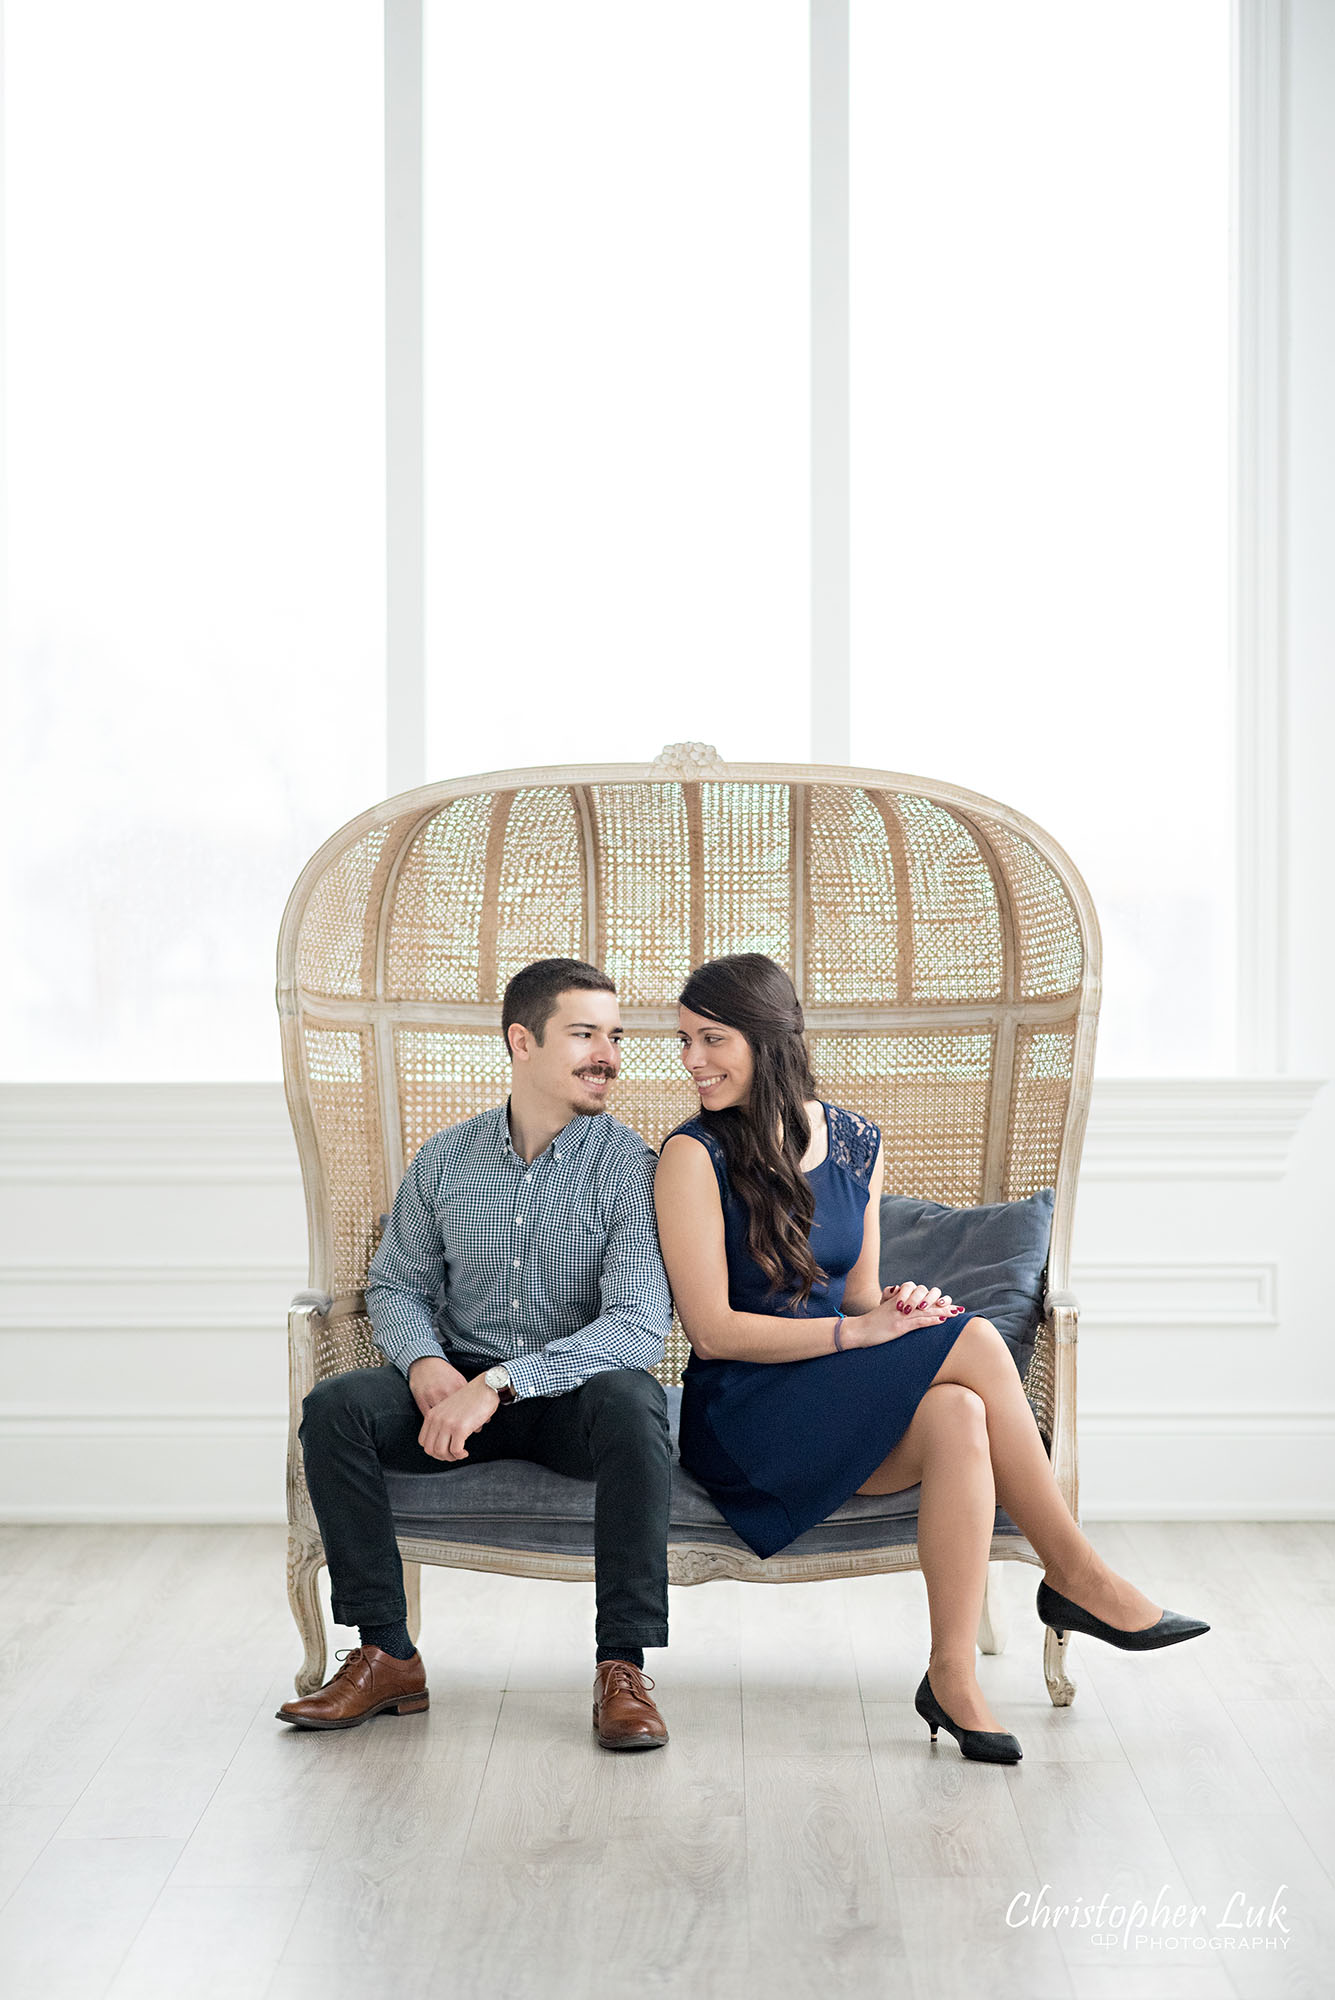 Christopher Luk Toronto Wedding Photographer Mint Room Studios Conservatory Engagement Session Winter Indoor Natural Light Candid Photojournalistic Bride Groom Wicker French Rustic Vintage Dome Loveseat Chair Looking at Each Other Lovingly